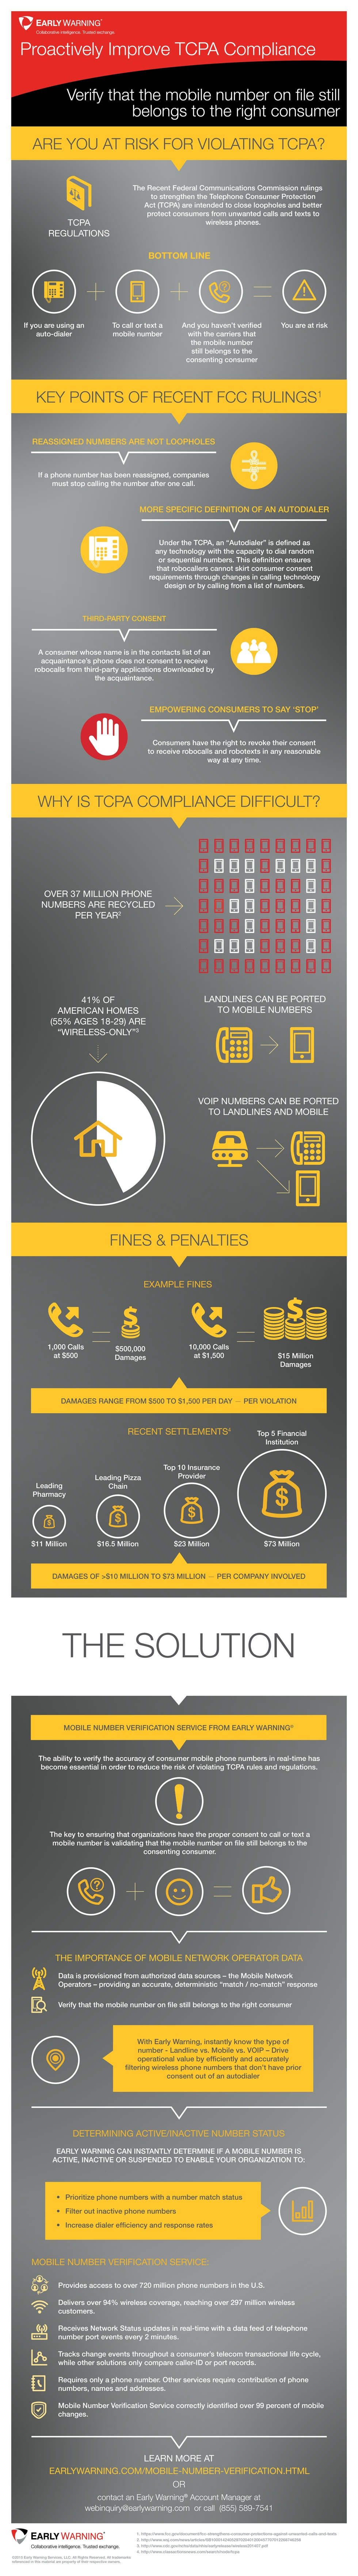 mnv-tcpa-infographic.jpg